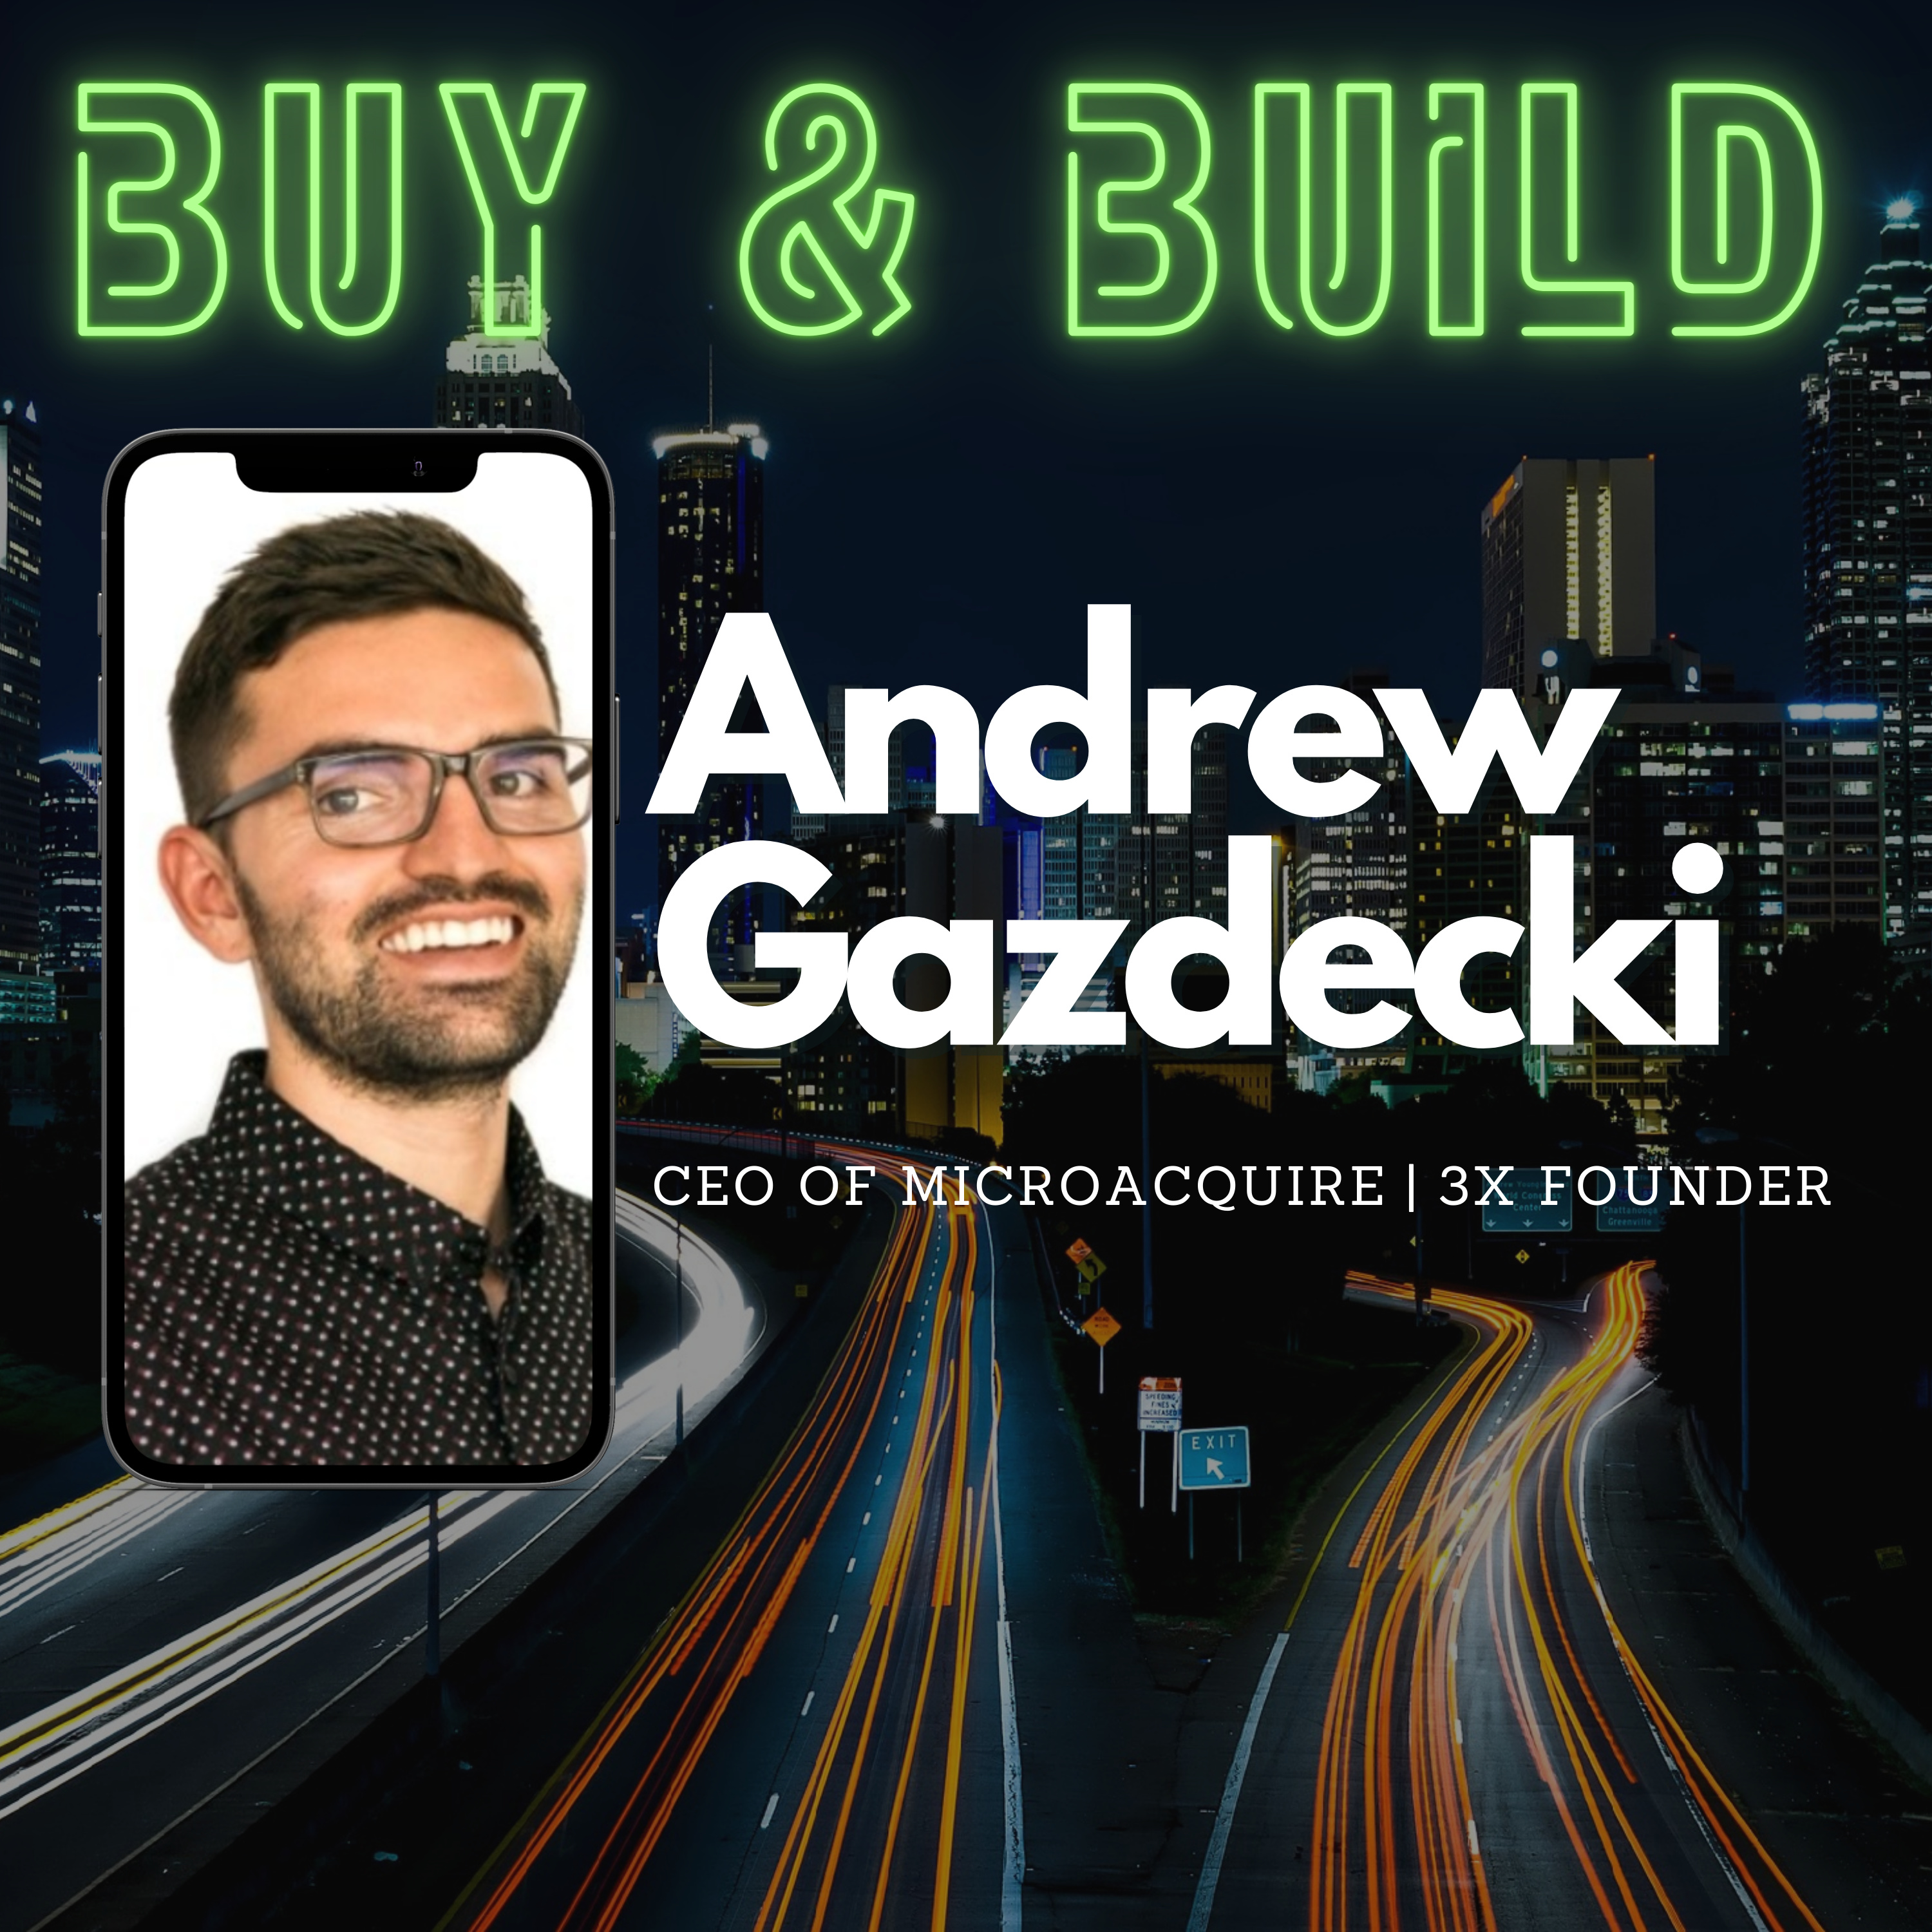 Ep3: Interview with the CEO of Microacquire, Andrew Gazdecki - How to Be Successful as an Entrepreneur and Details About Buying Businesses